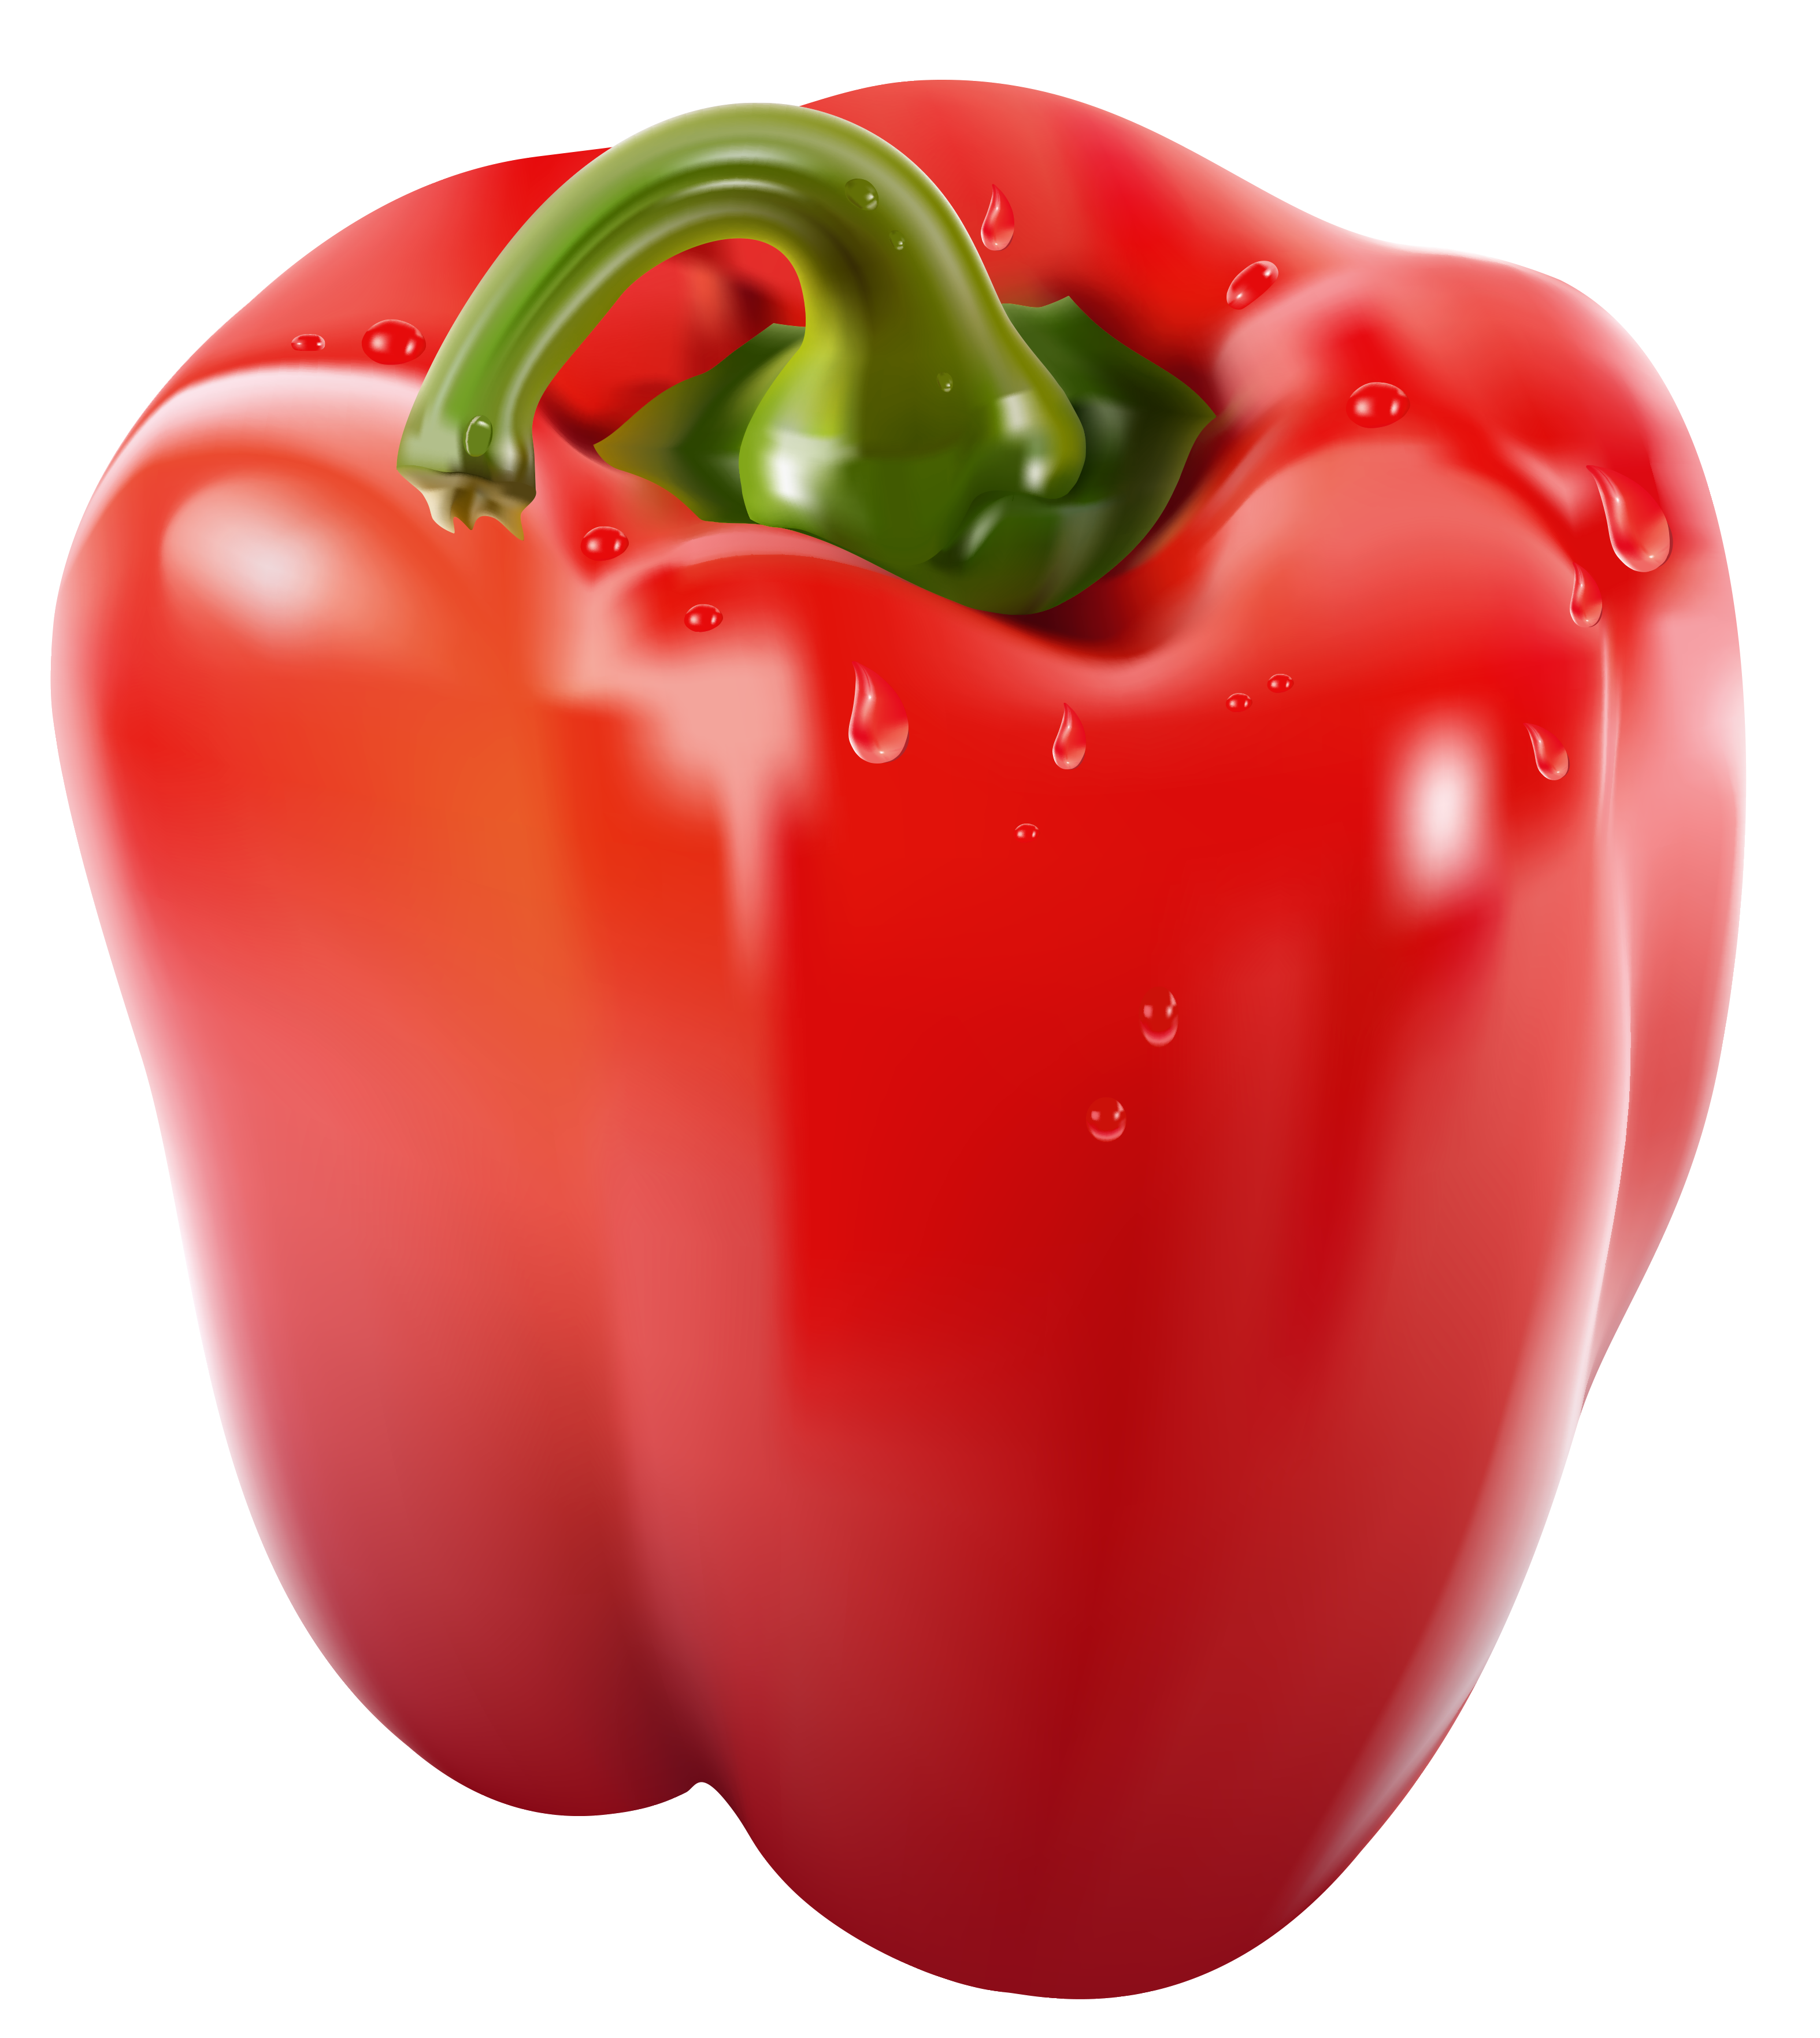 Peppers clipart capsicum. Transparent red pepper png